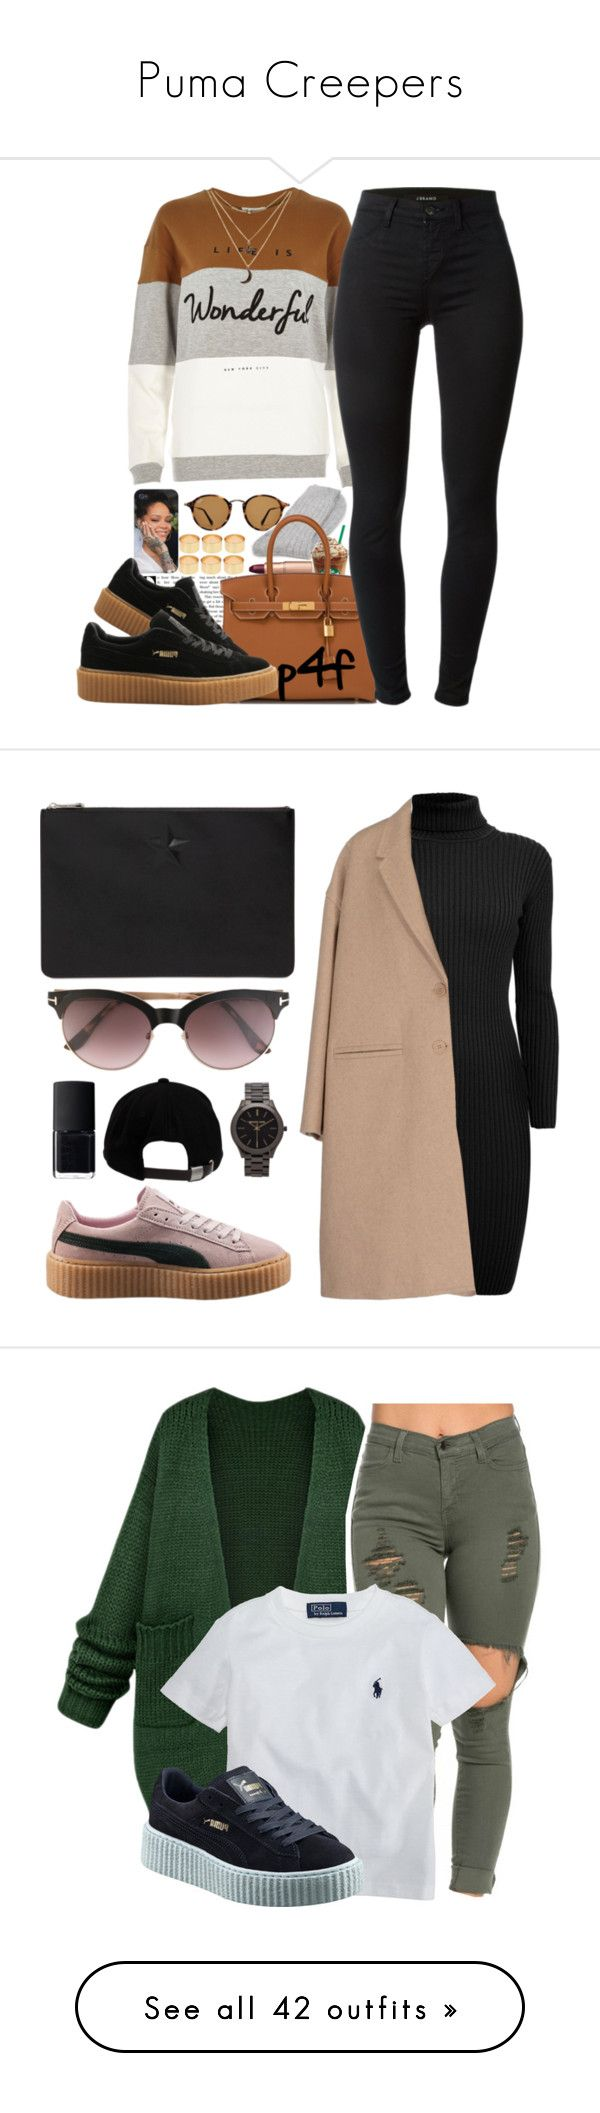 Puma Creepers by jaaaaai ❤ liked on Polyvore featuring ASOS, Ray-Ban, Charlotte Tilbury, River Island, Ted Baker, Hermès, J Brand, Charlotte Russe, Puma and Tom Ford